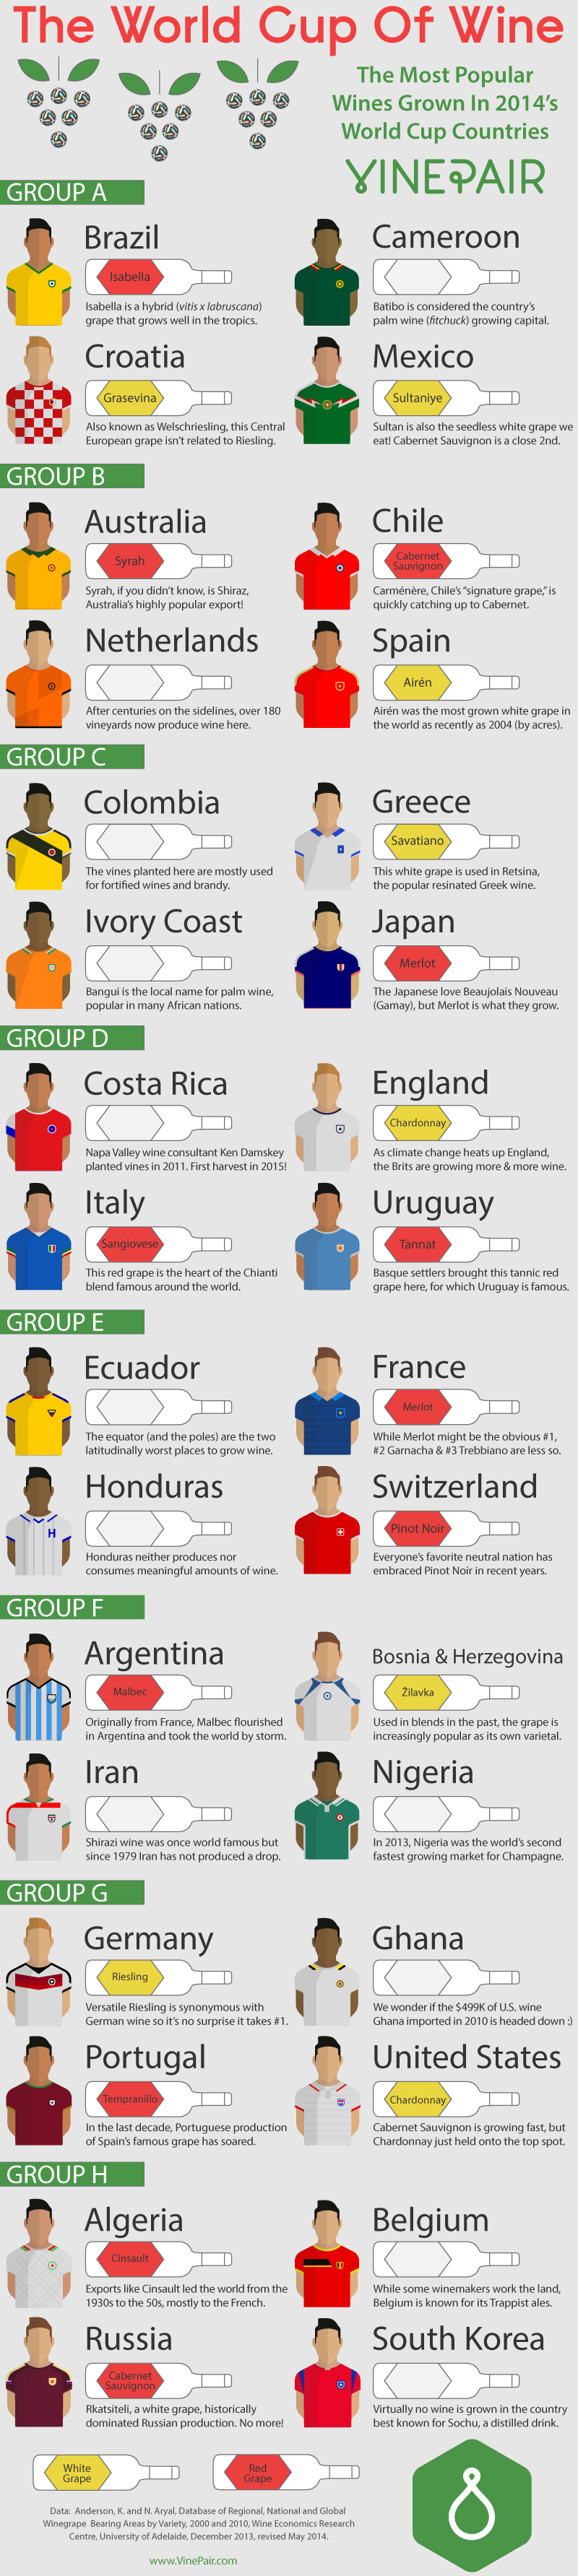 The World Cup Of Wine 2014 Infographic Wine Infographic Wine Facts Wine And Beer